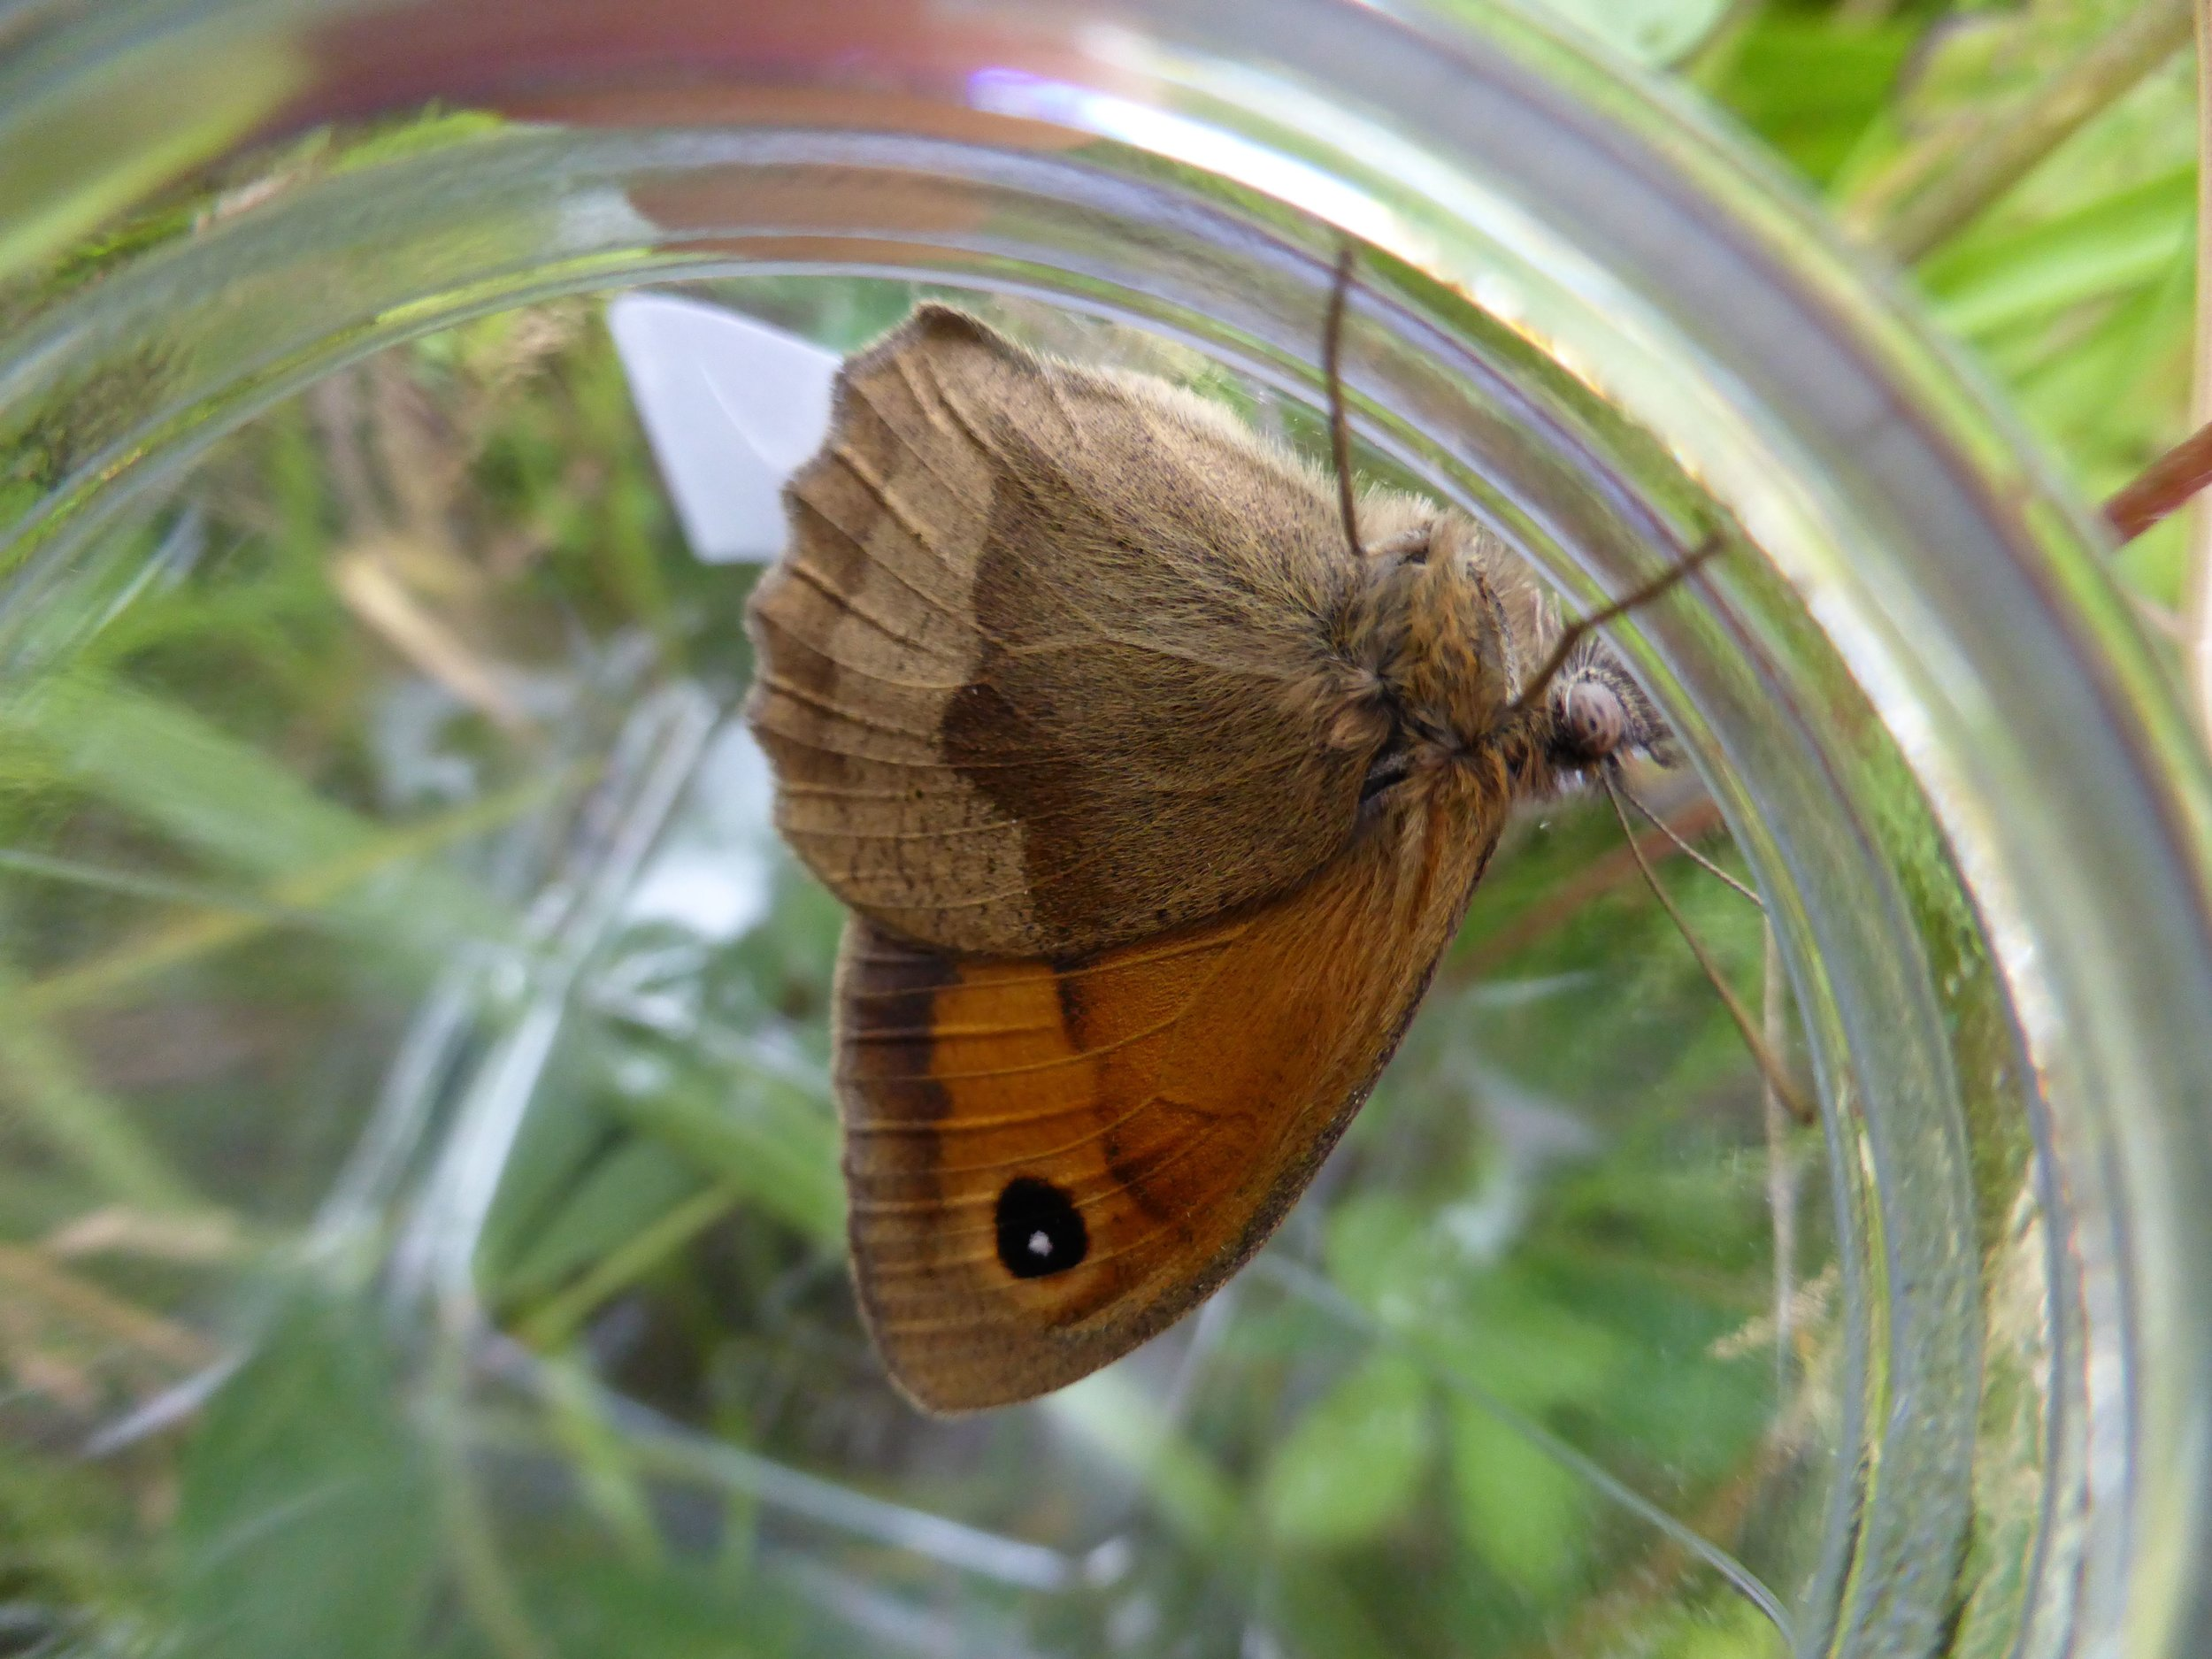 A meadow brown butterfly captured from long grass